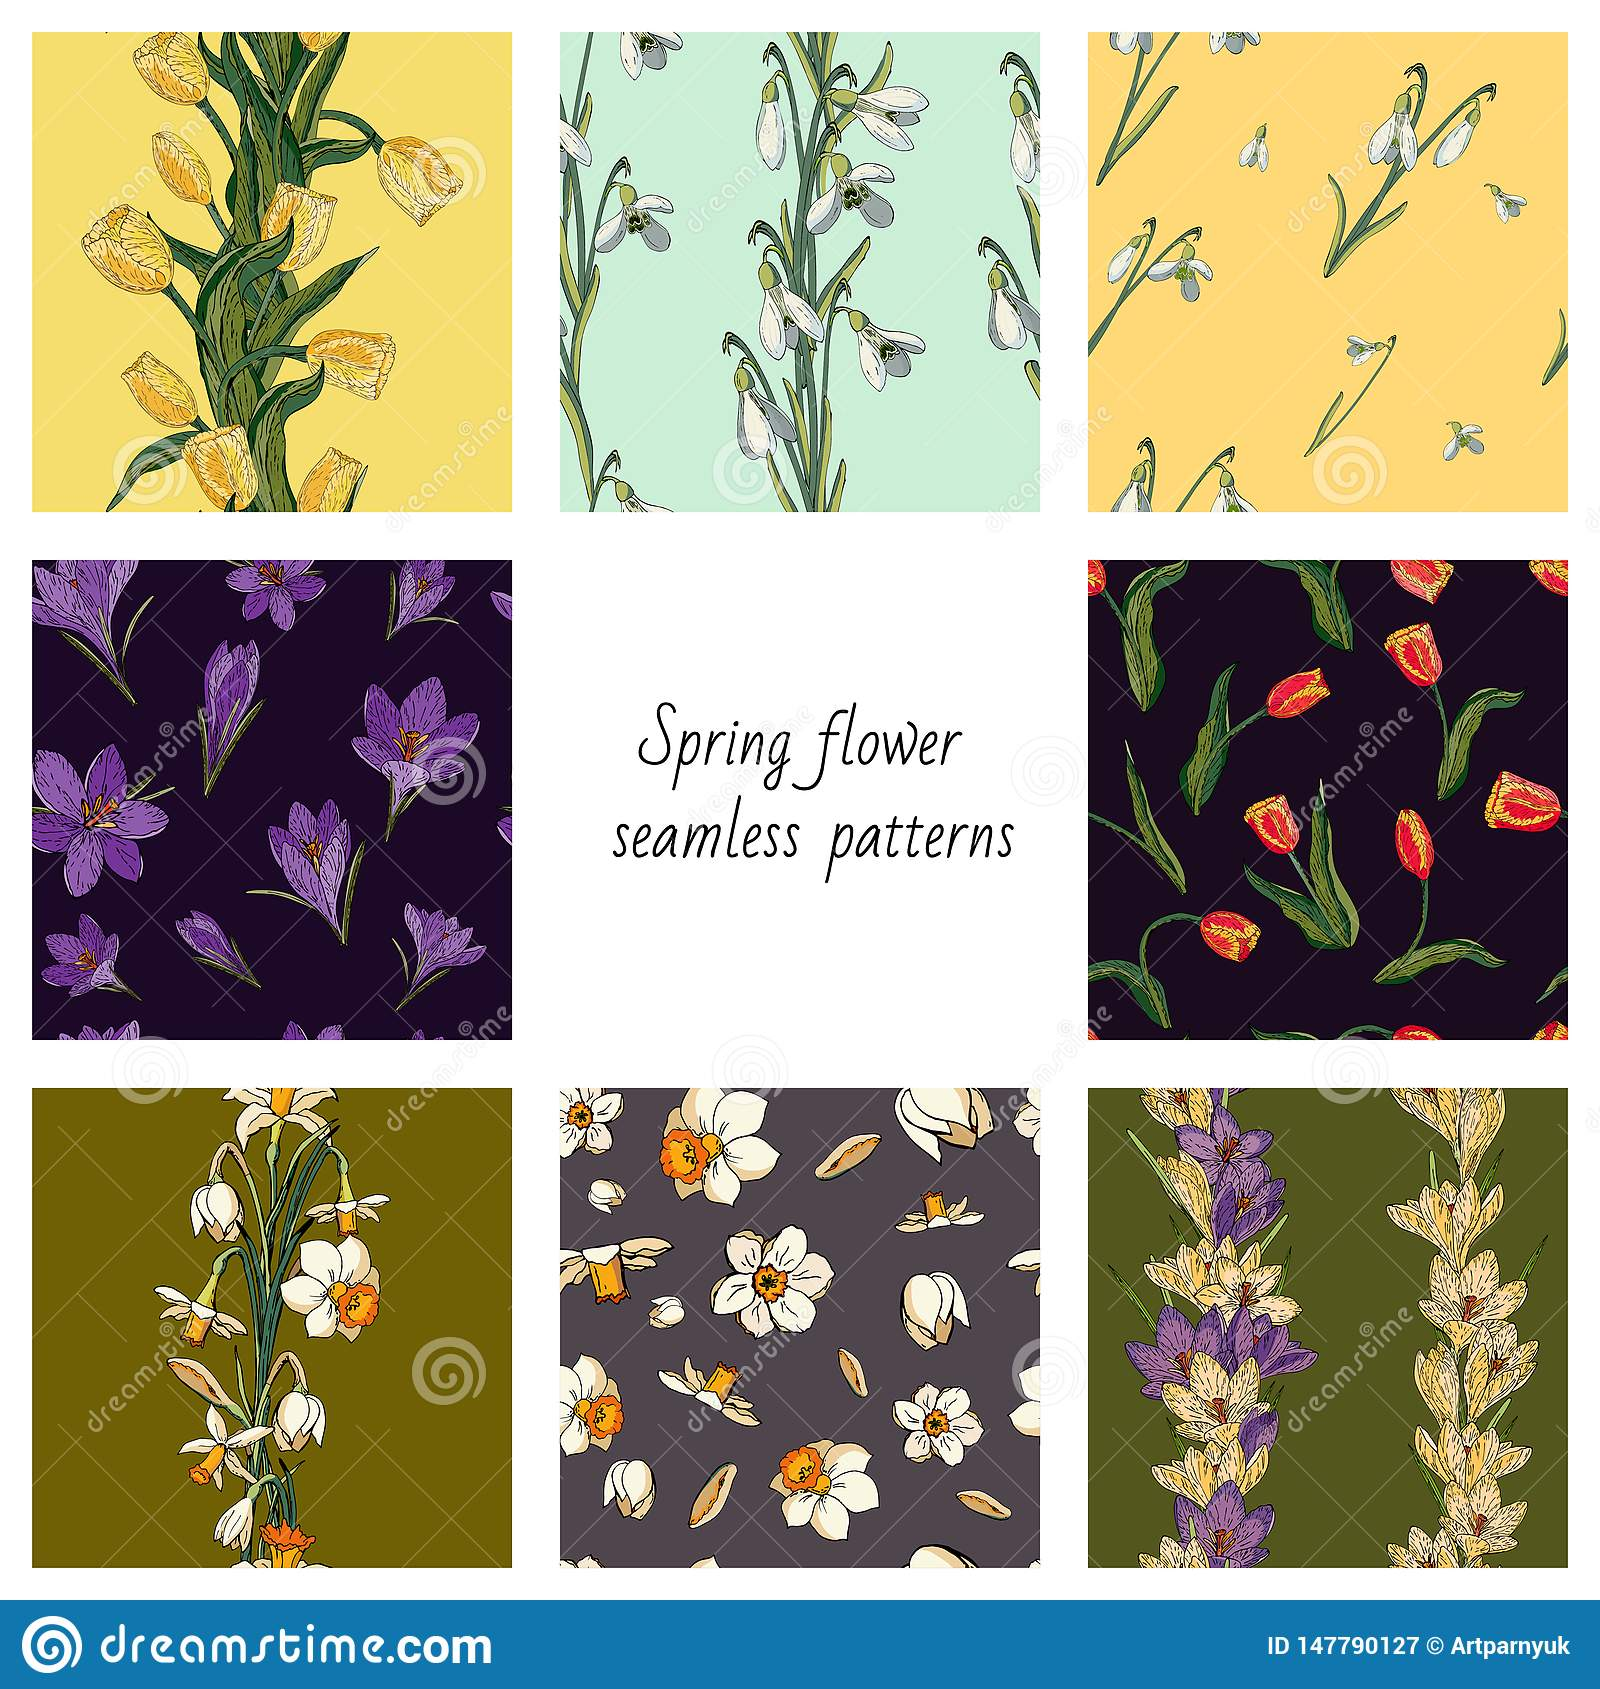 Collection of 8 vector seamless color patterns with spring flowers. Textures with tulips, crocuses, snowdrops and daffodils